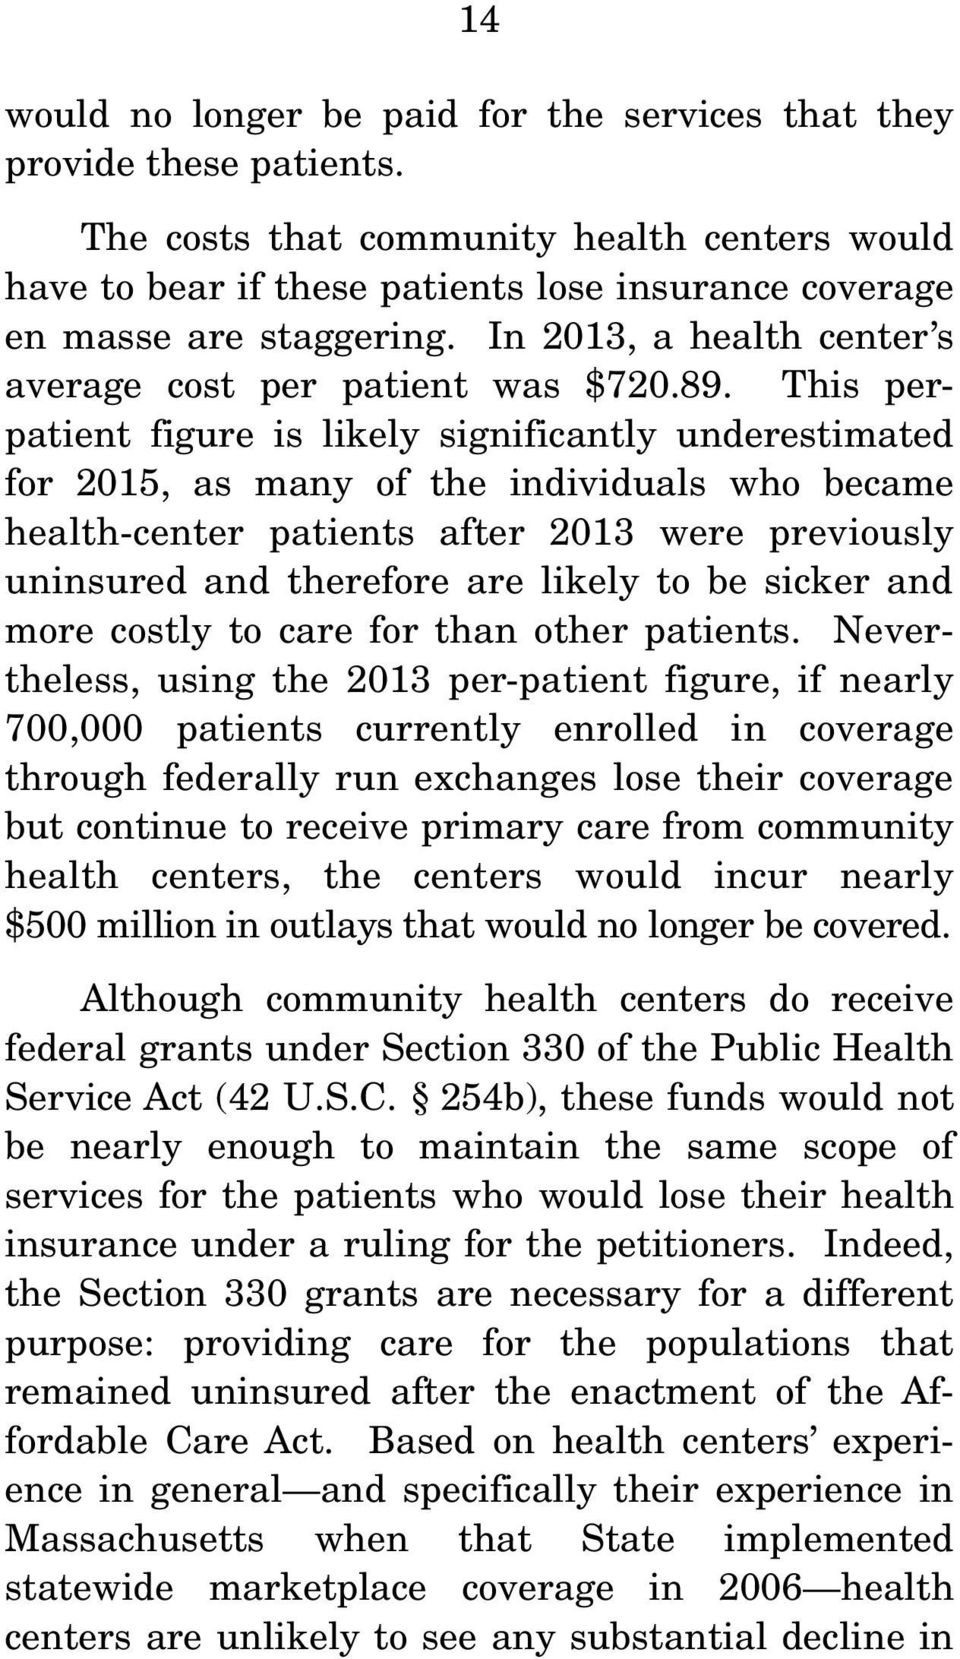 This perpatient figure is likely significantly underestimated for 2015, as many of the individuals who became health-center patients after 2013 were previously uninsured and therefore are likely to